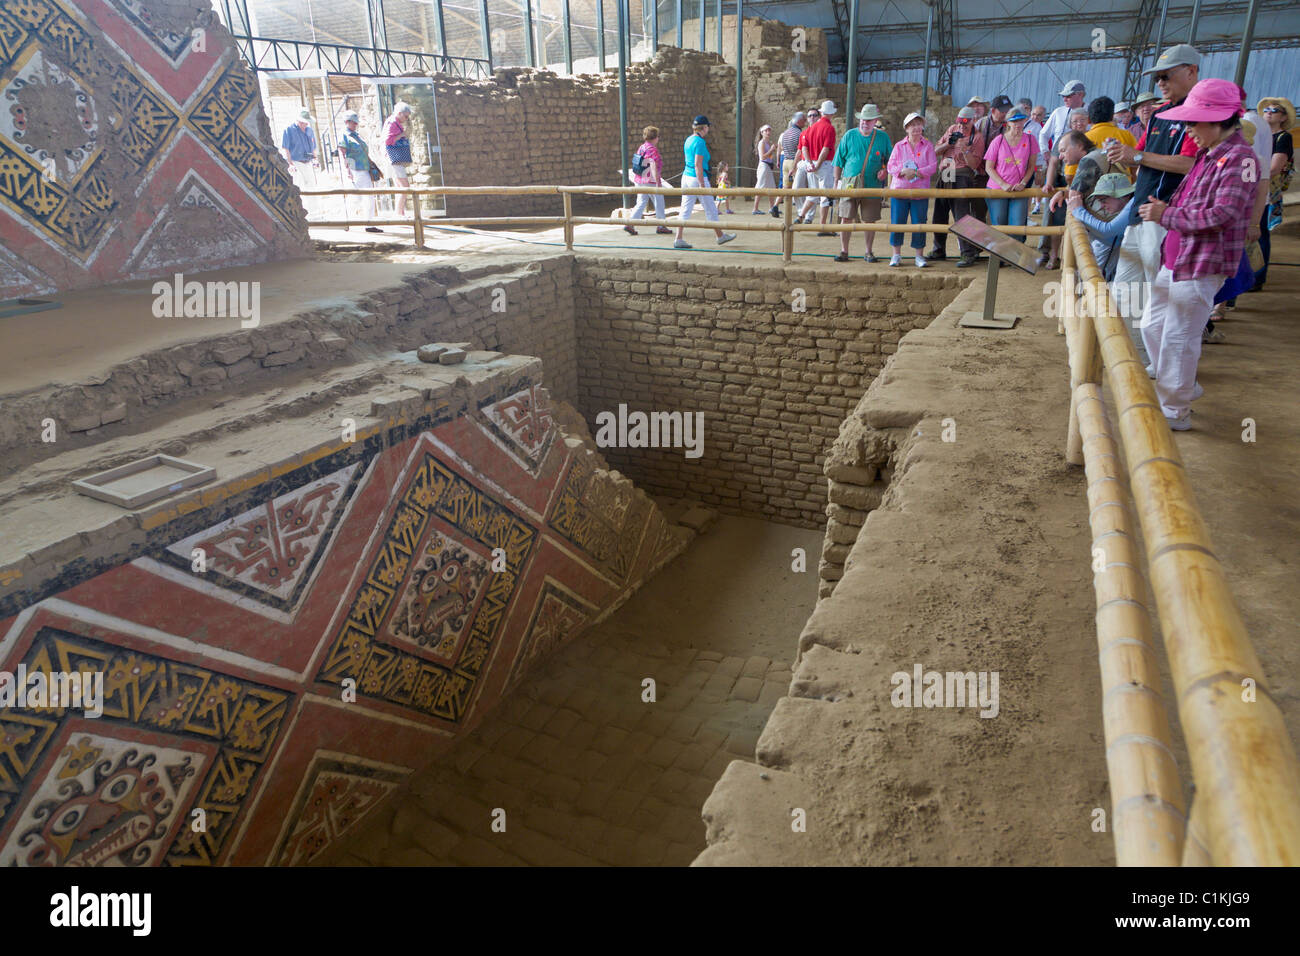 Tourists looking at Ancient paintings at the Huaca de la Luna, Trujillo, Peru - Stock Image